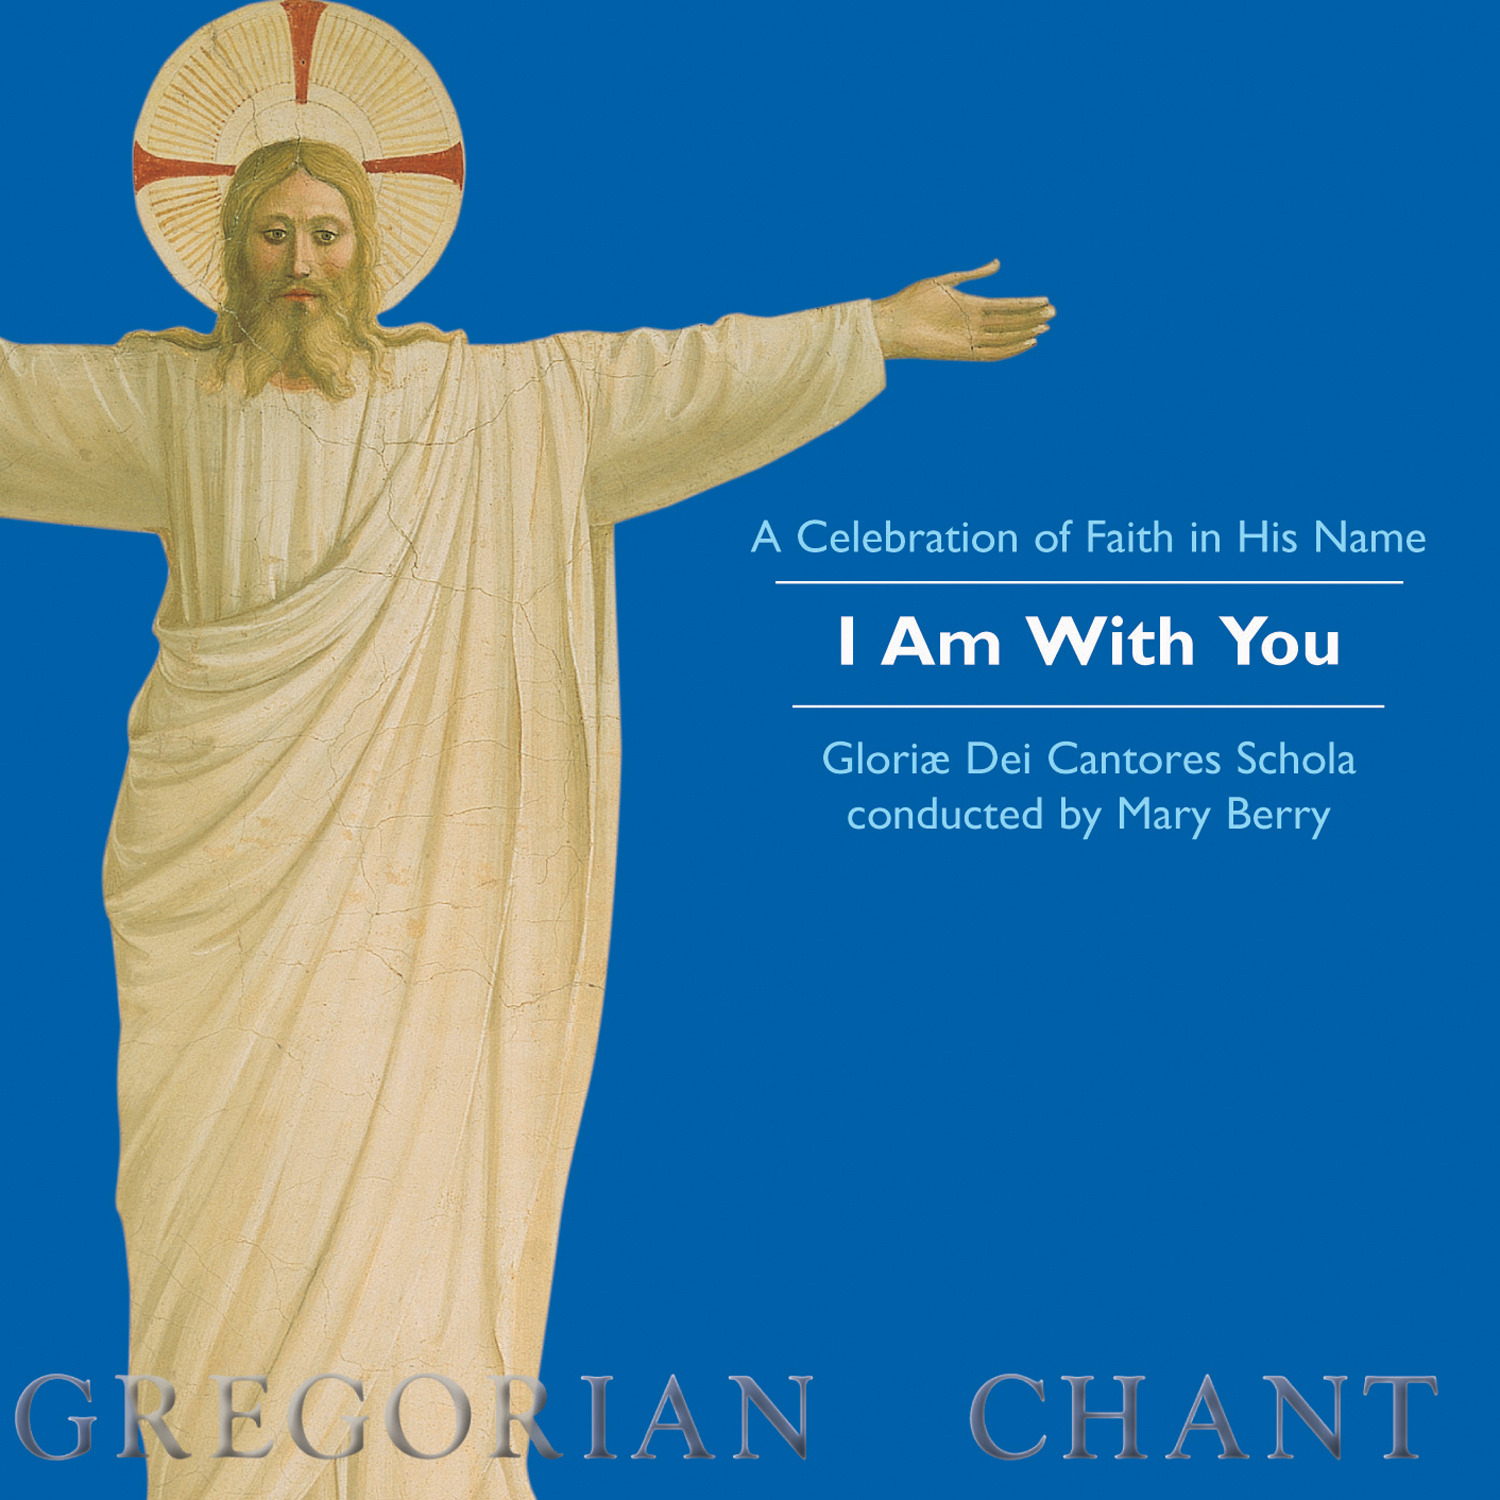 A Celebration of Faith in His Name: I Am with You